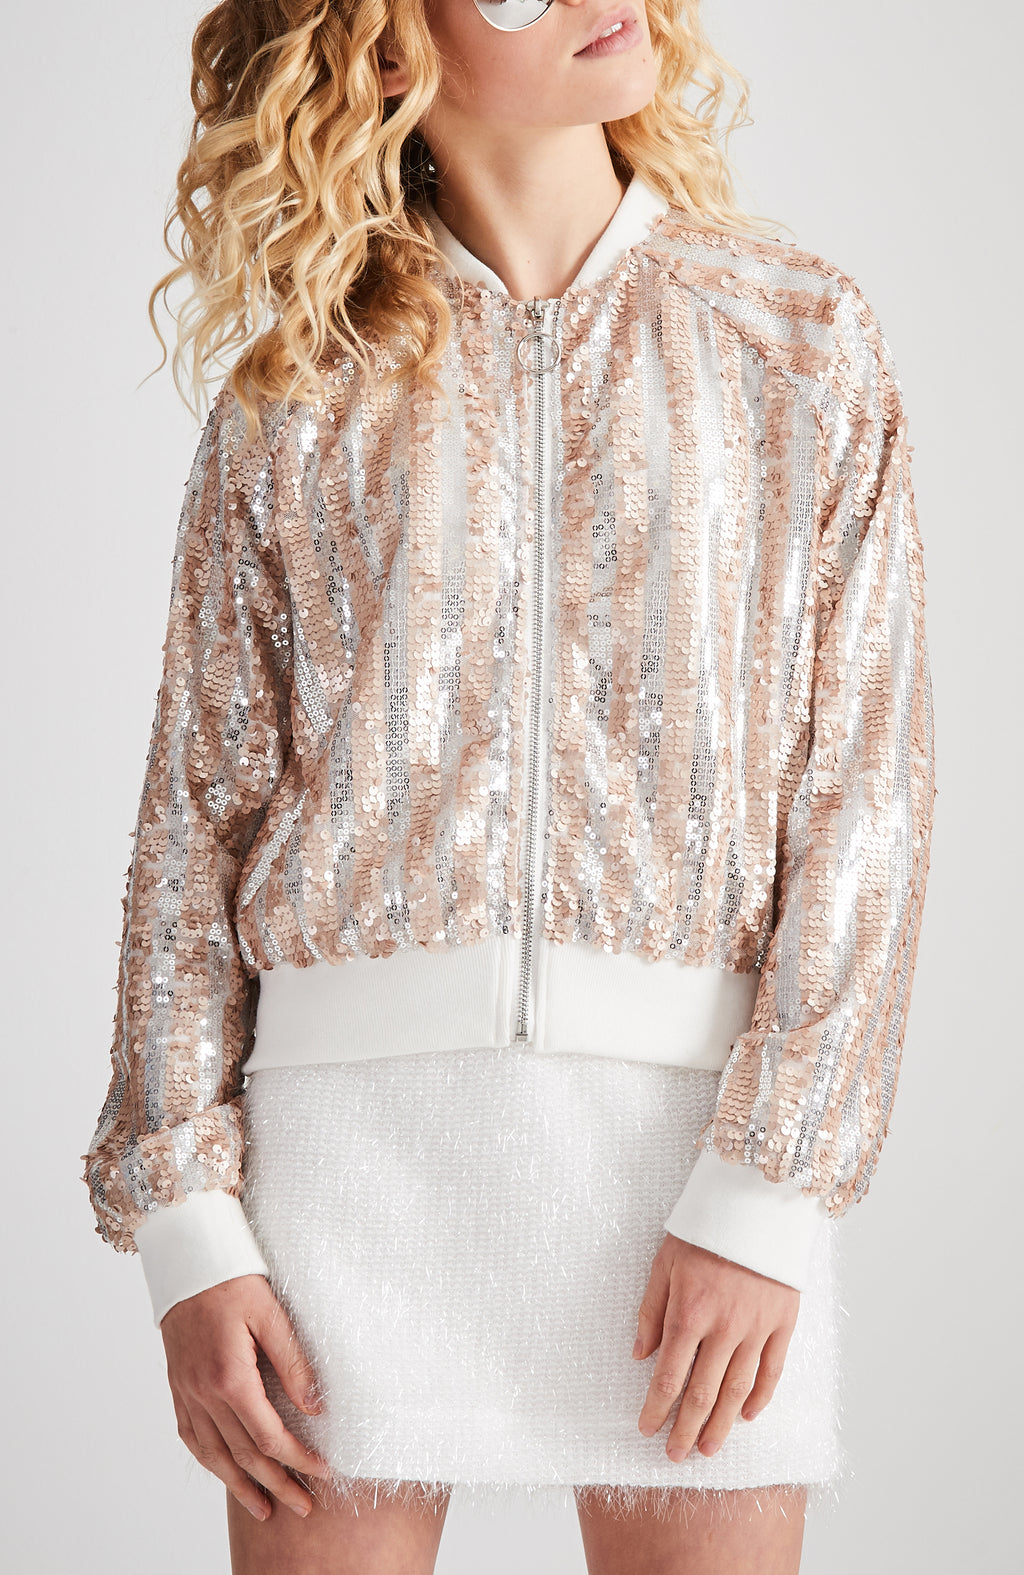 nancy rose gold & silver sequin bomber jacket